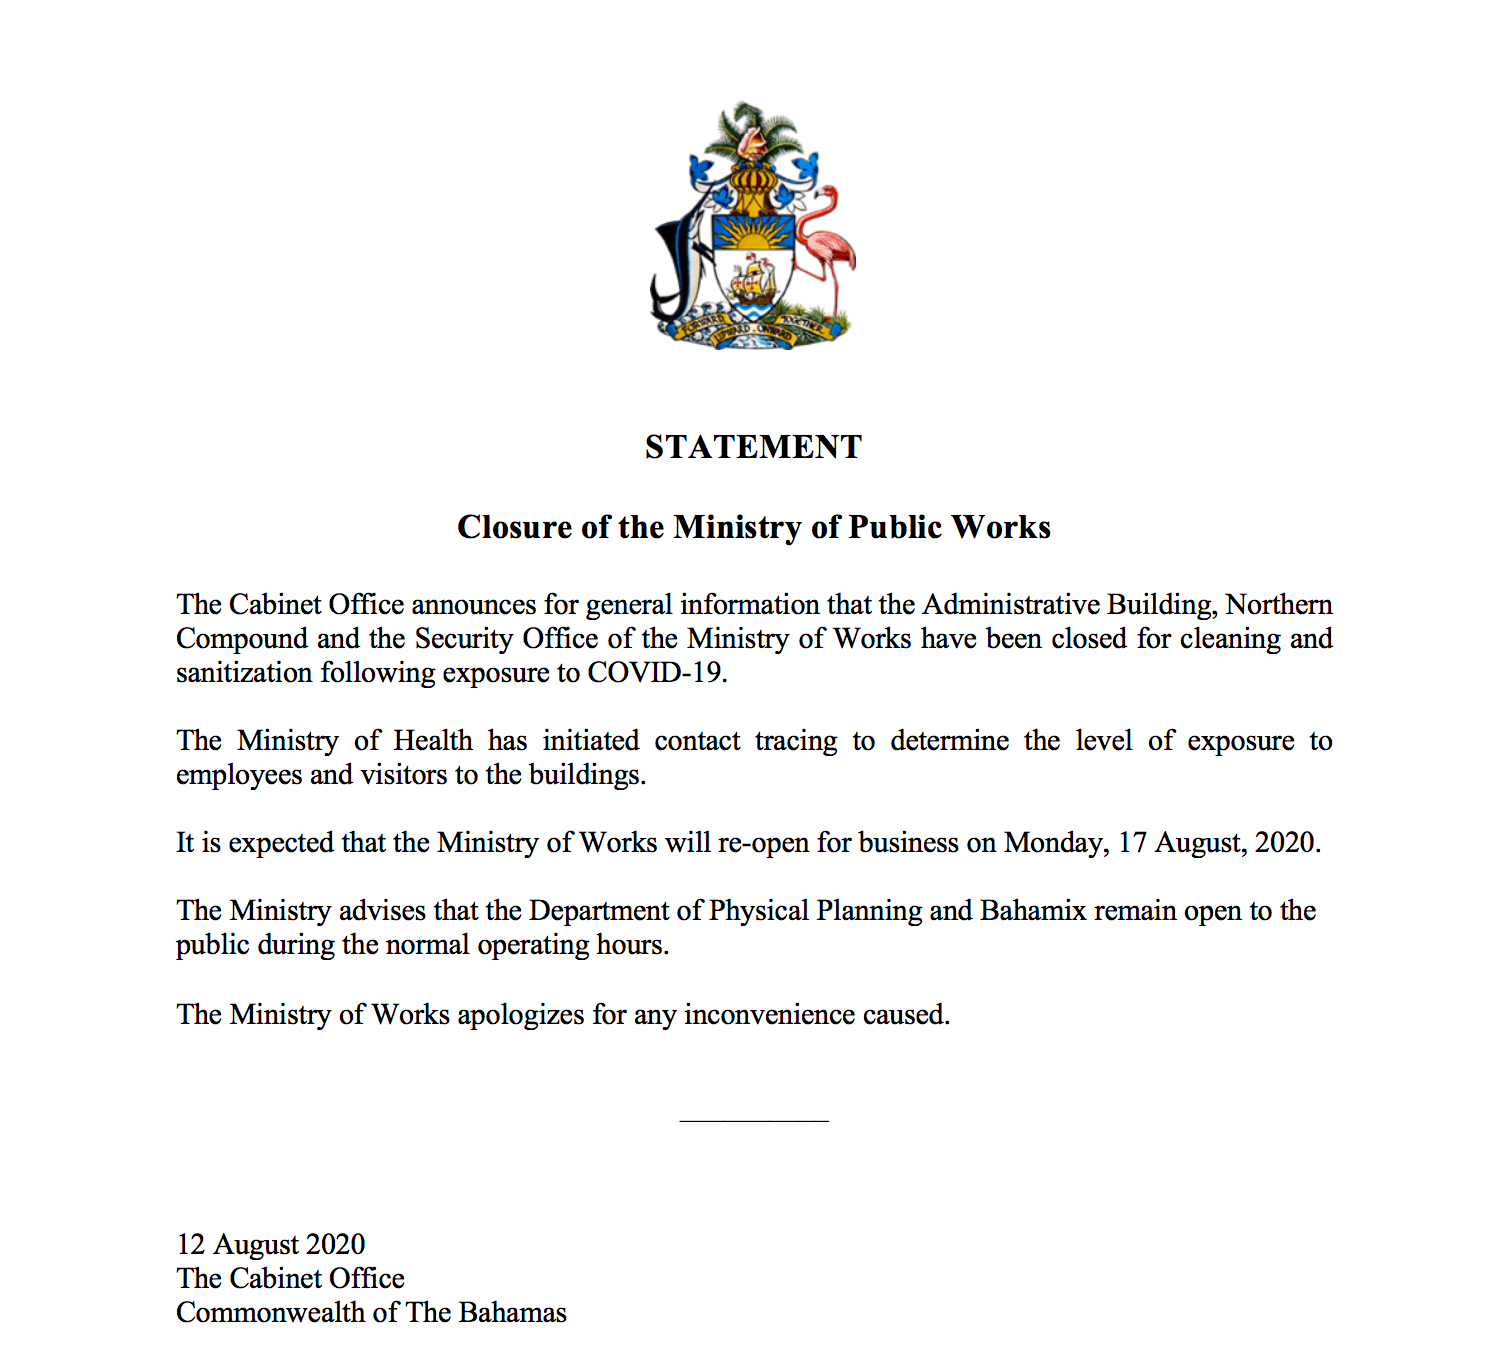 Ministry of Works partial closure due to COVID-19 exposure